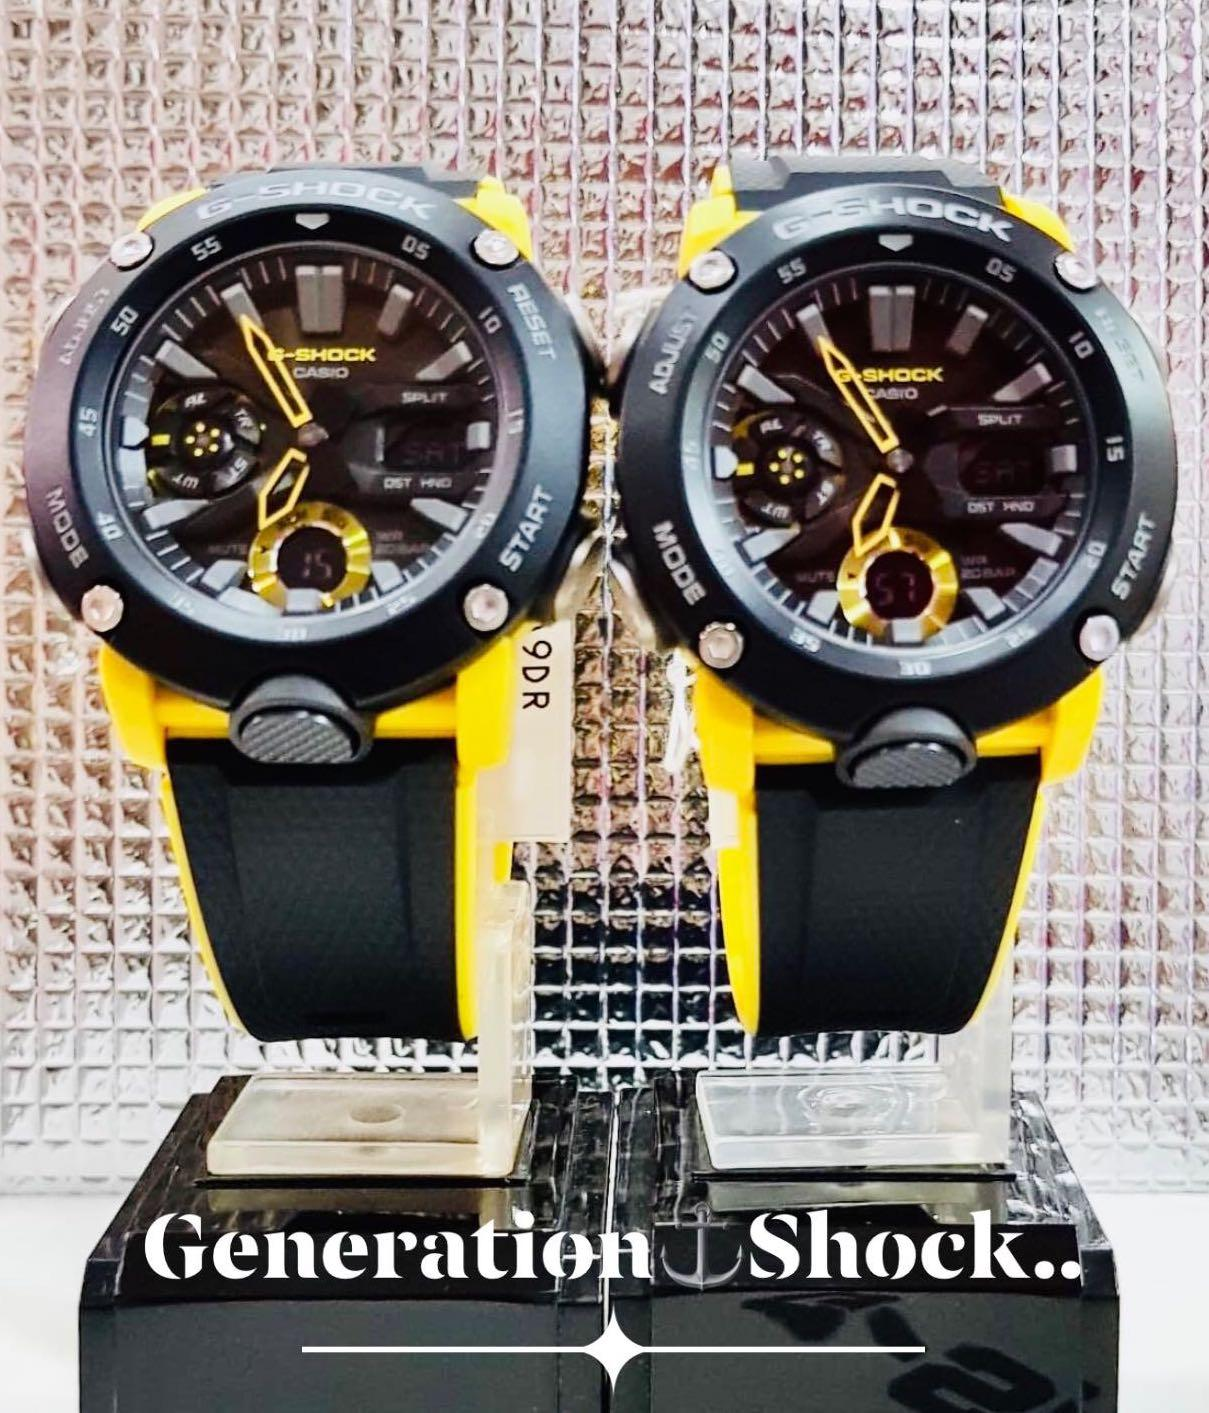 NEW🌟COUPLE💝SET : GSHOCK UNISEX DIVER SPORTS WATCH : 100% ORIGINAL AUTHENTIC CASIO G-SHOCK : GA-2000-1A9DR / GA-2000-1A9 / GA2000-1A9 / GA-2000S-1A (BUMBLEBEE🐝THEME)